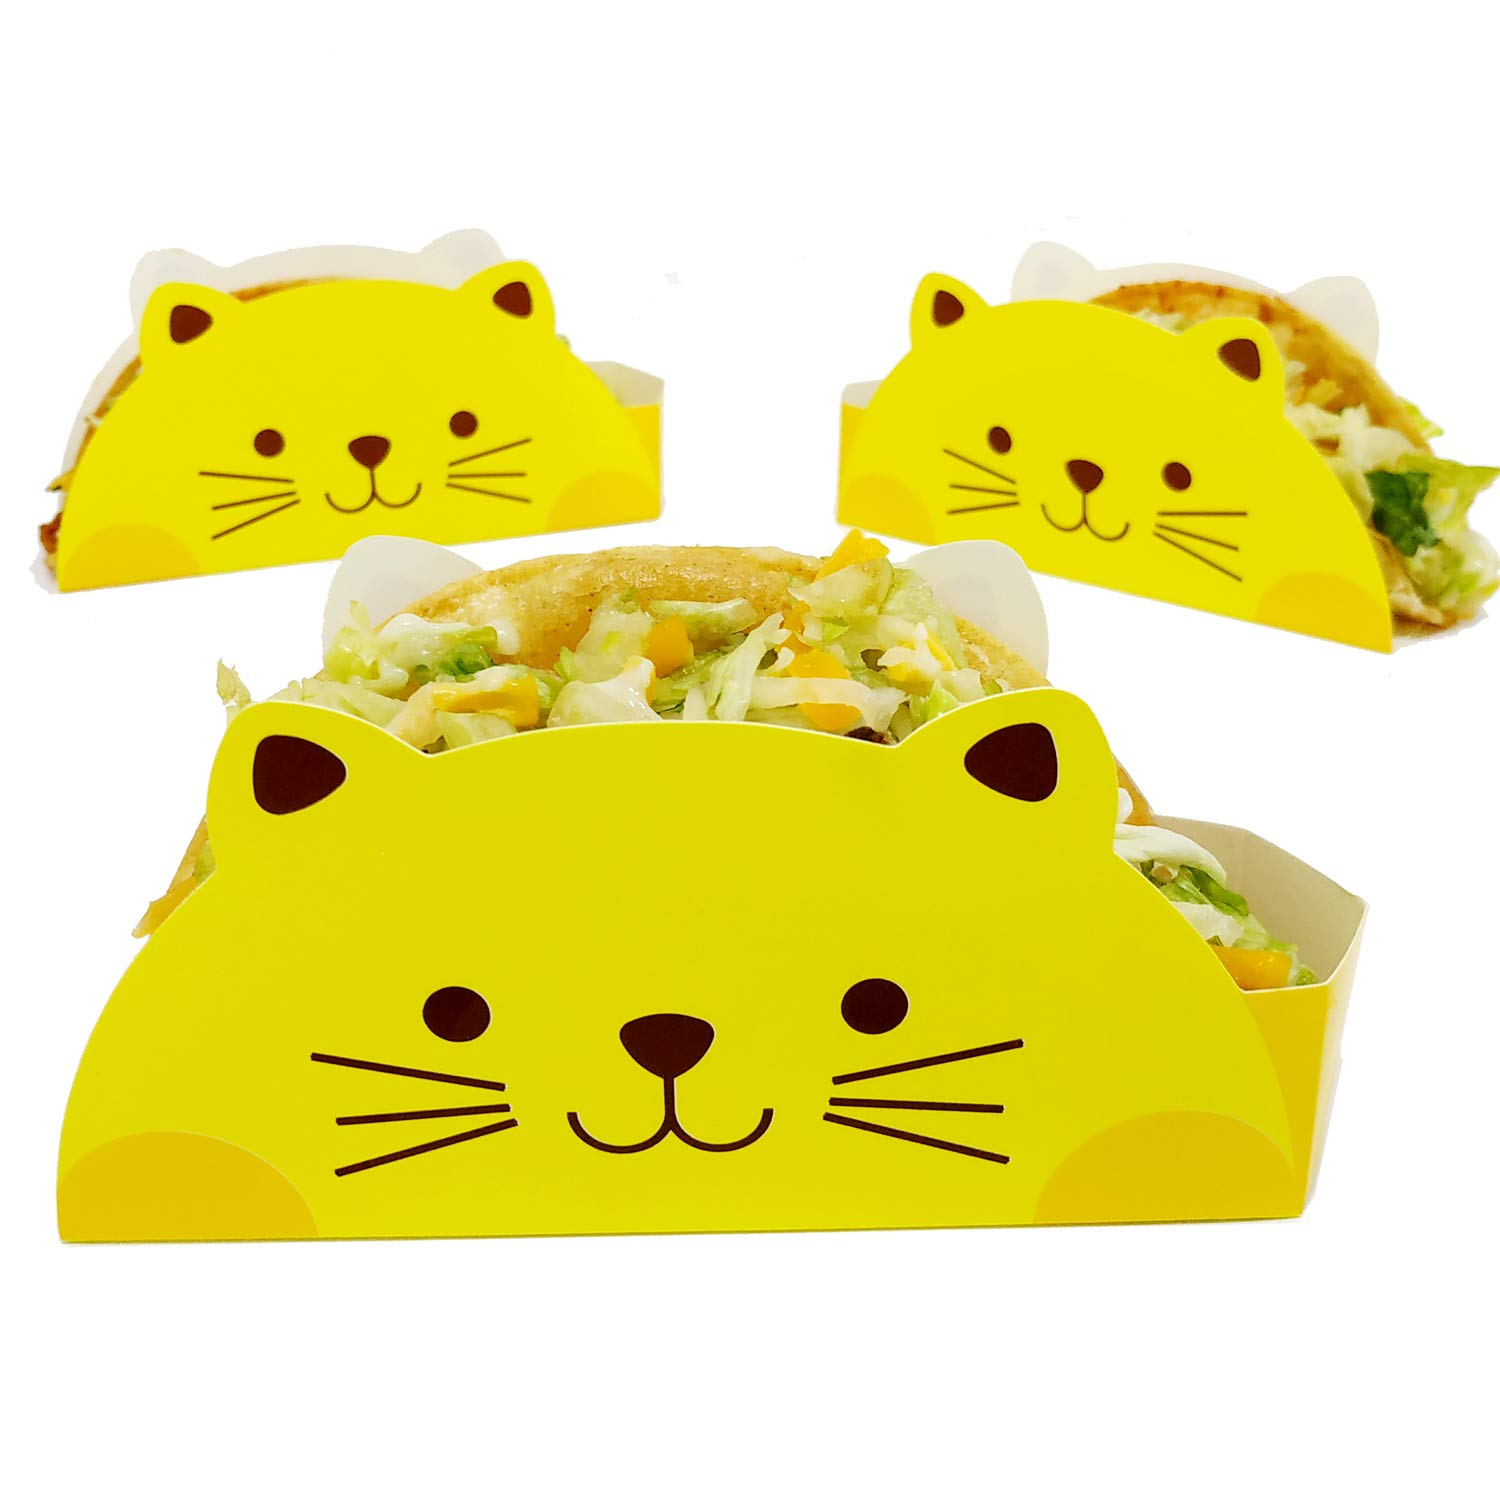 Cat Taco Holder by KitchNX, Ideal For 6'' Taco Shells, 50 Count, Great for Taco Tuesday, Birthday, Food Truck or Party Supplies - Disposable Coated Food Safe Paperboard by KitchNX